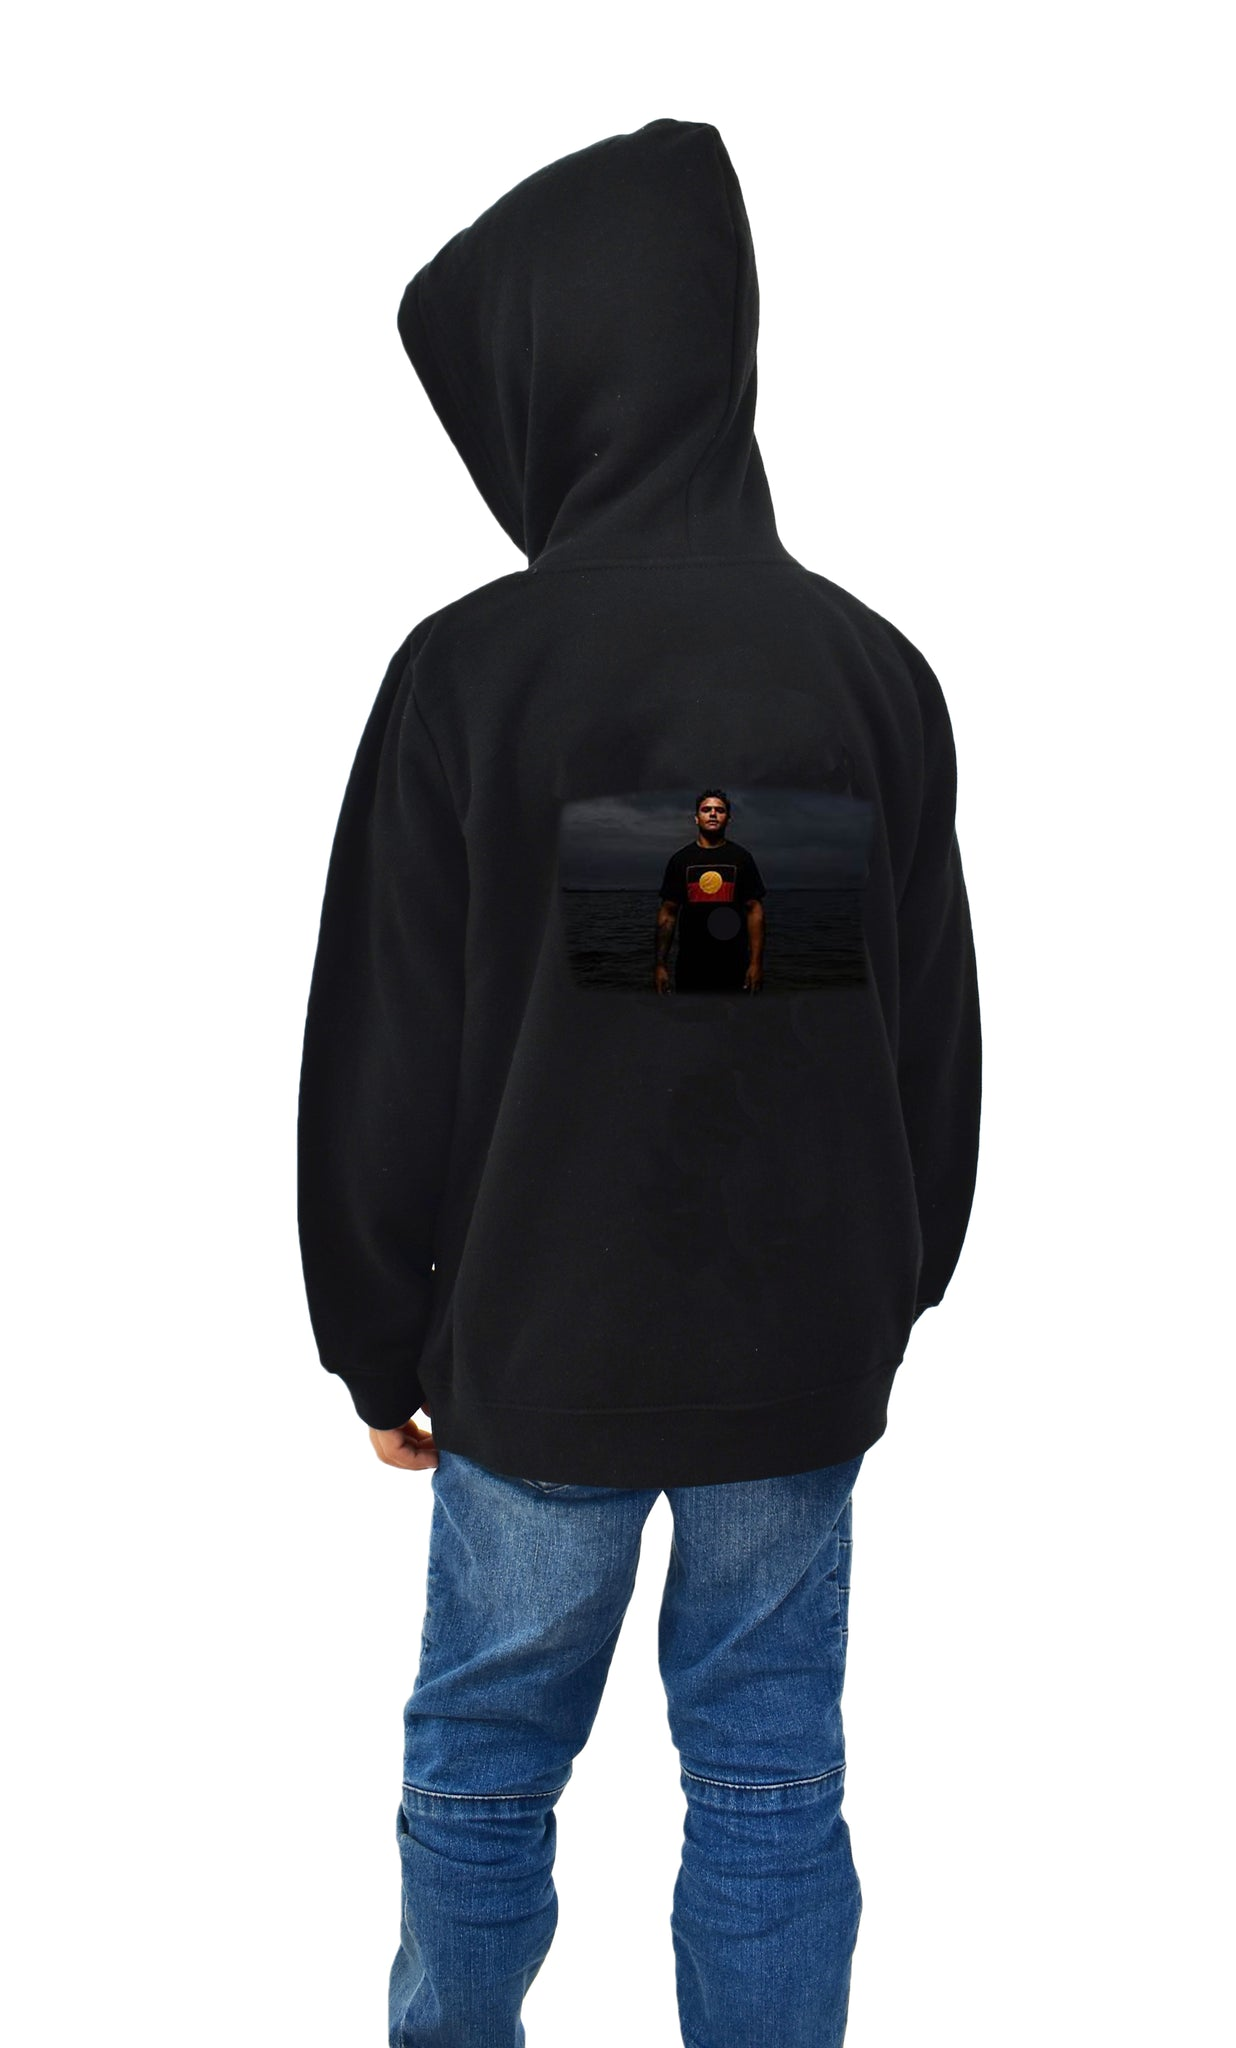 Hoodie by Latrell Mitchell